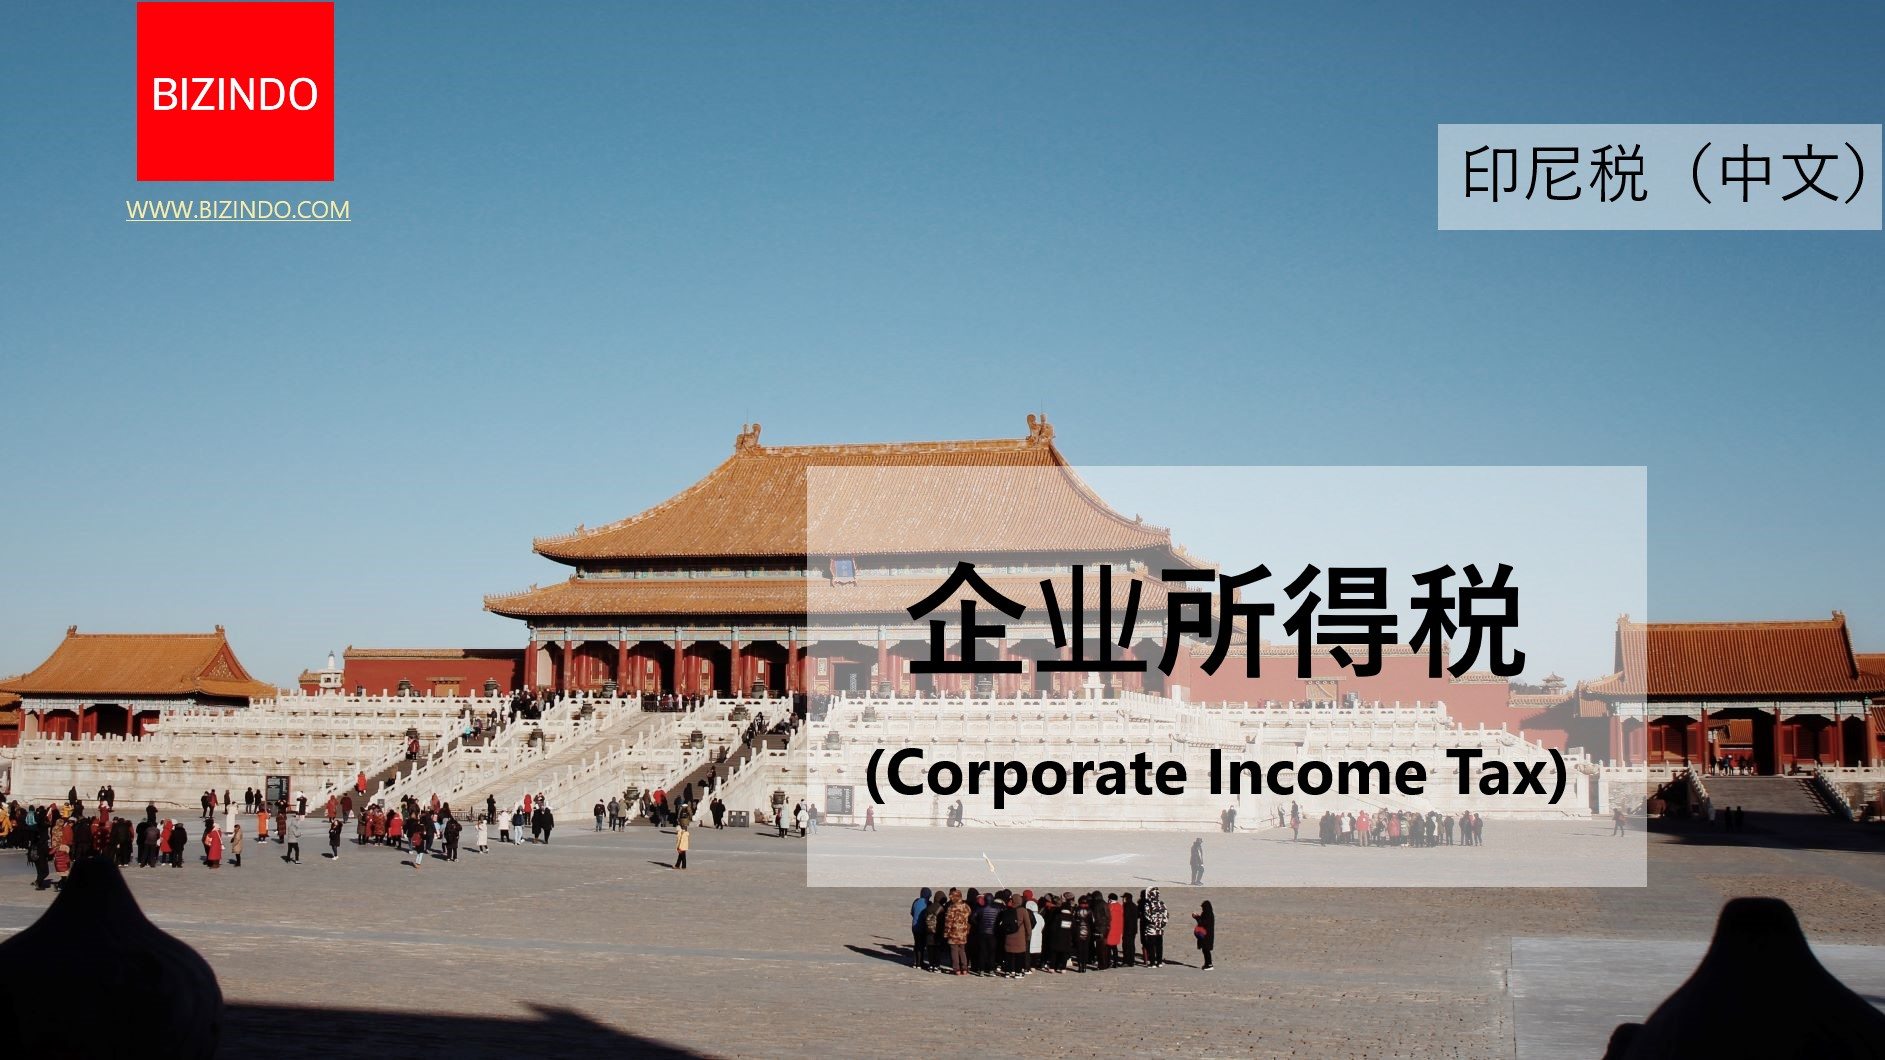 Indonesian Corporate Income Tax (in Chinese) 印尼企业所得税(中文)